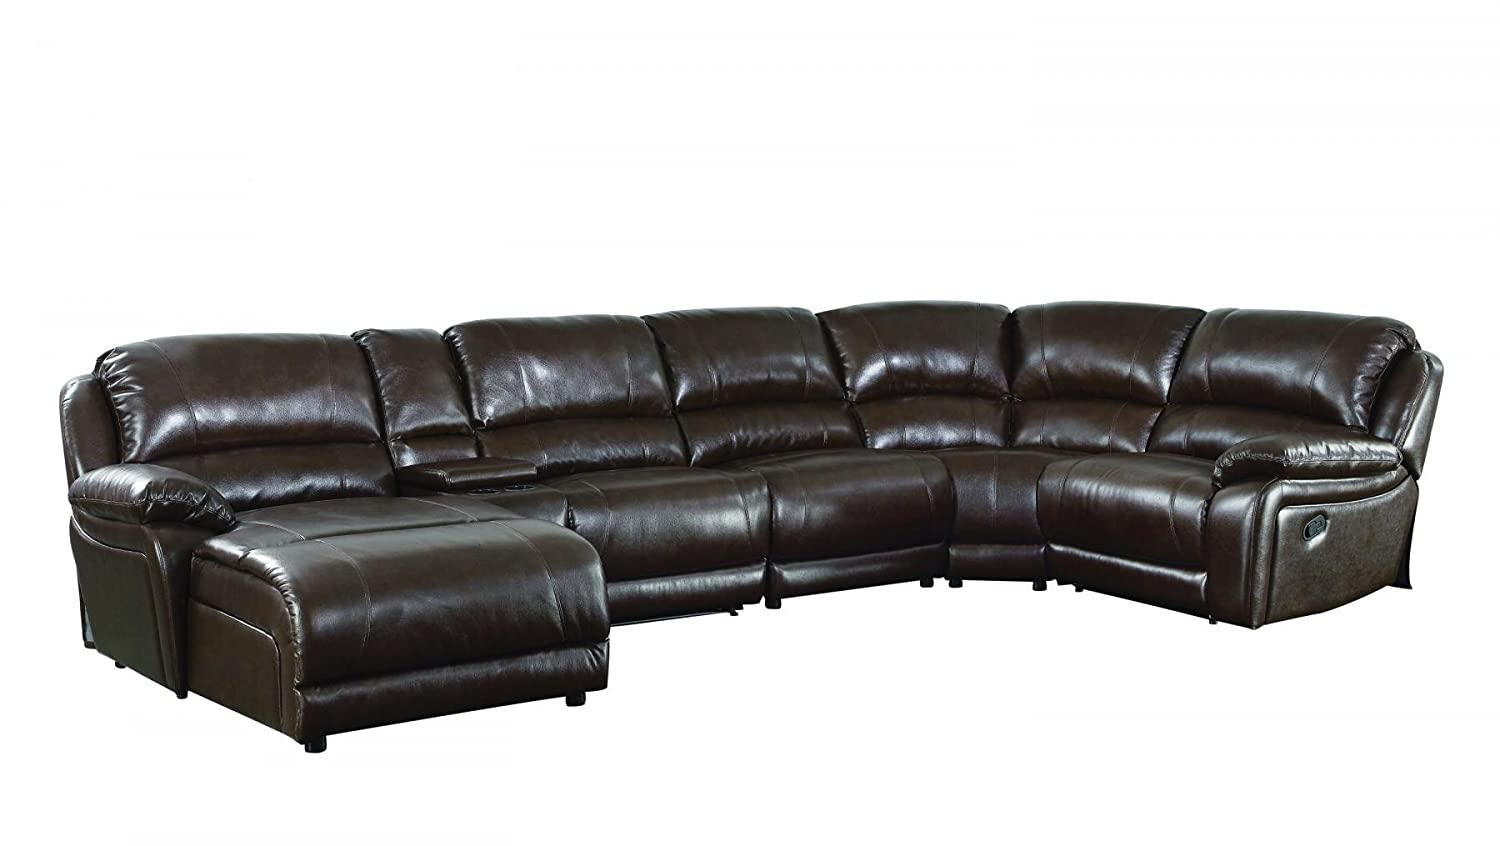 Amazon.com: Coaster 6 Piece Leather Sectional in Chestnut: Kitchen ...